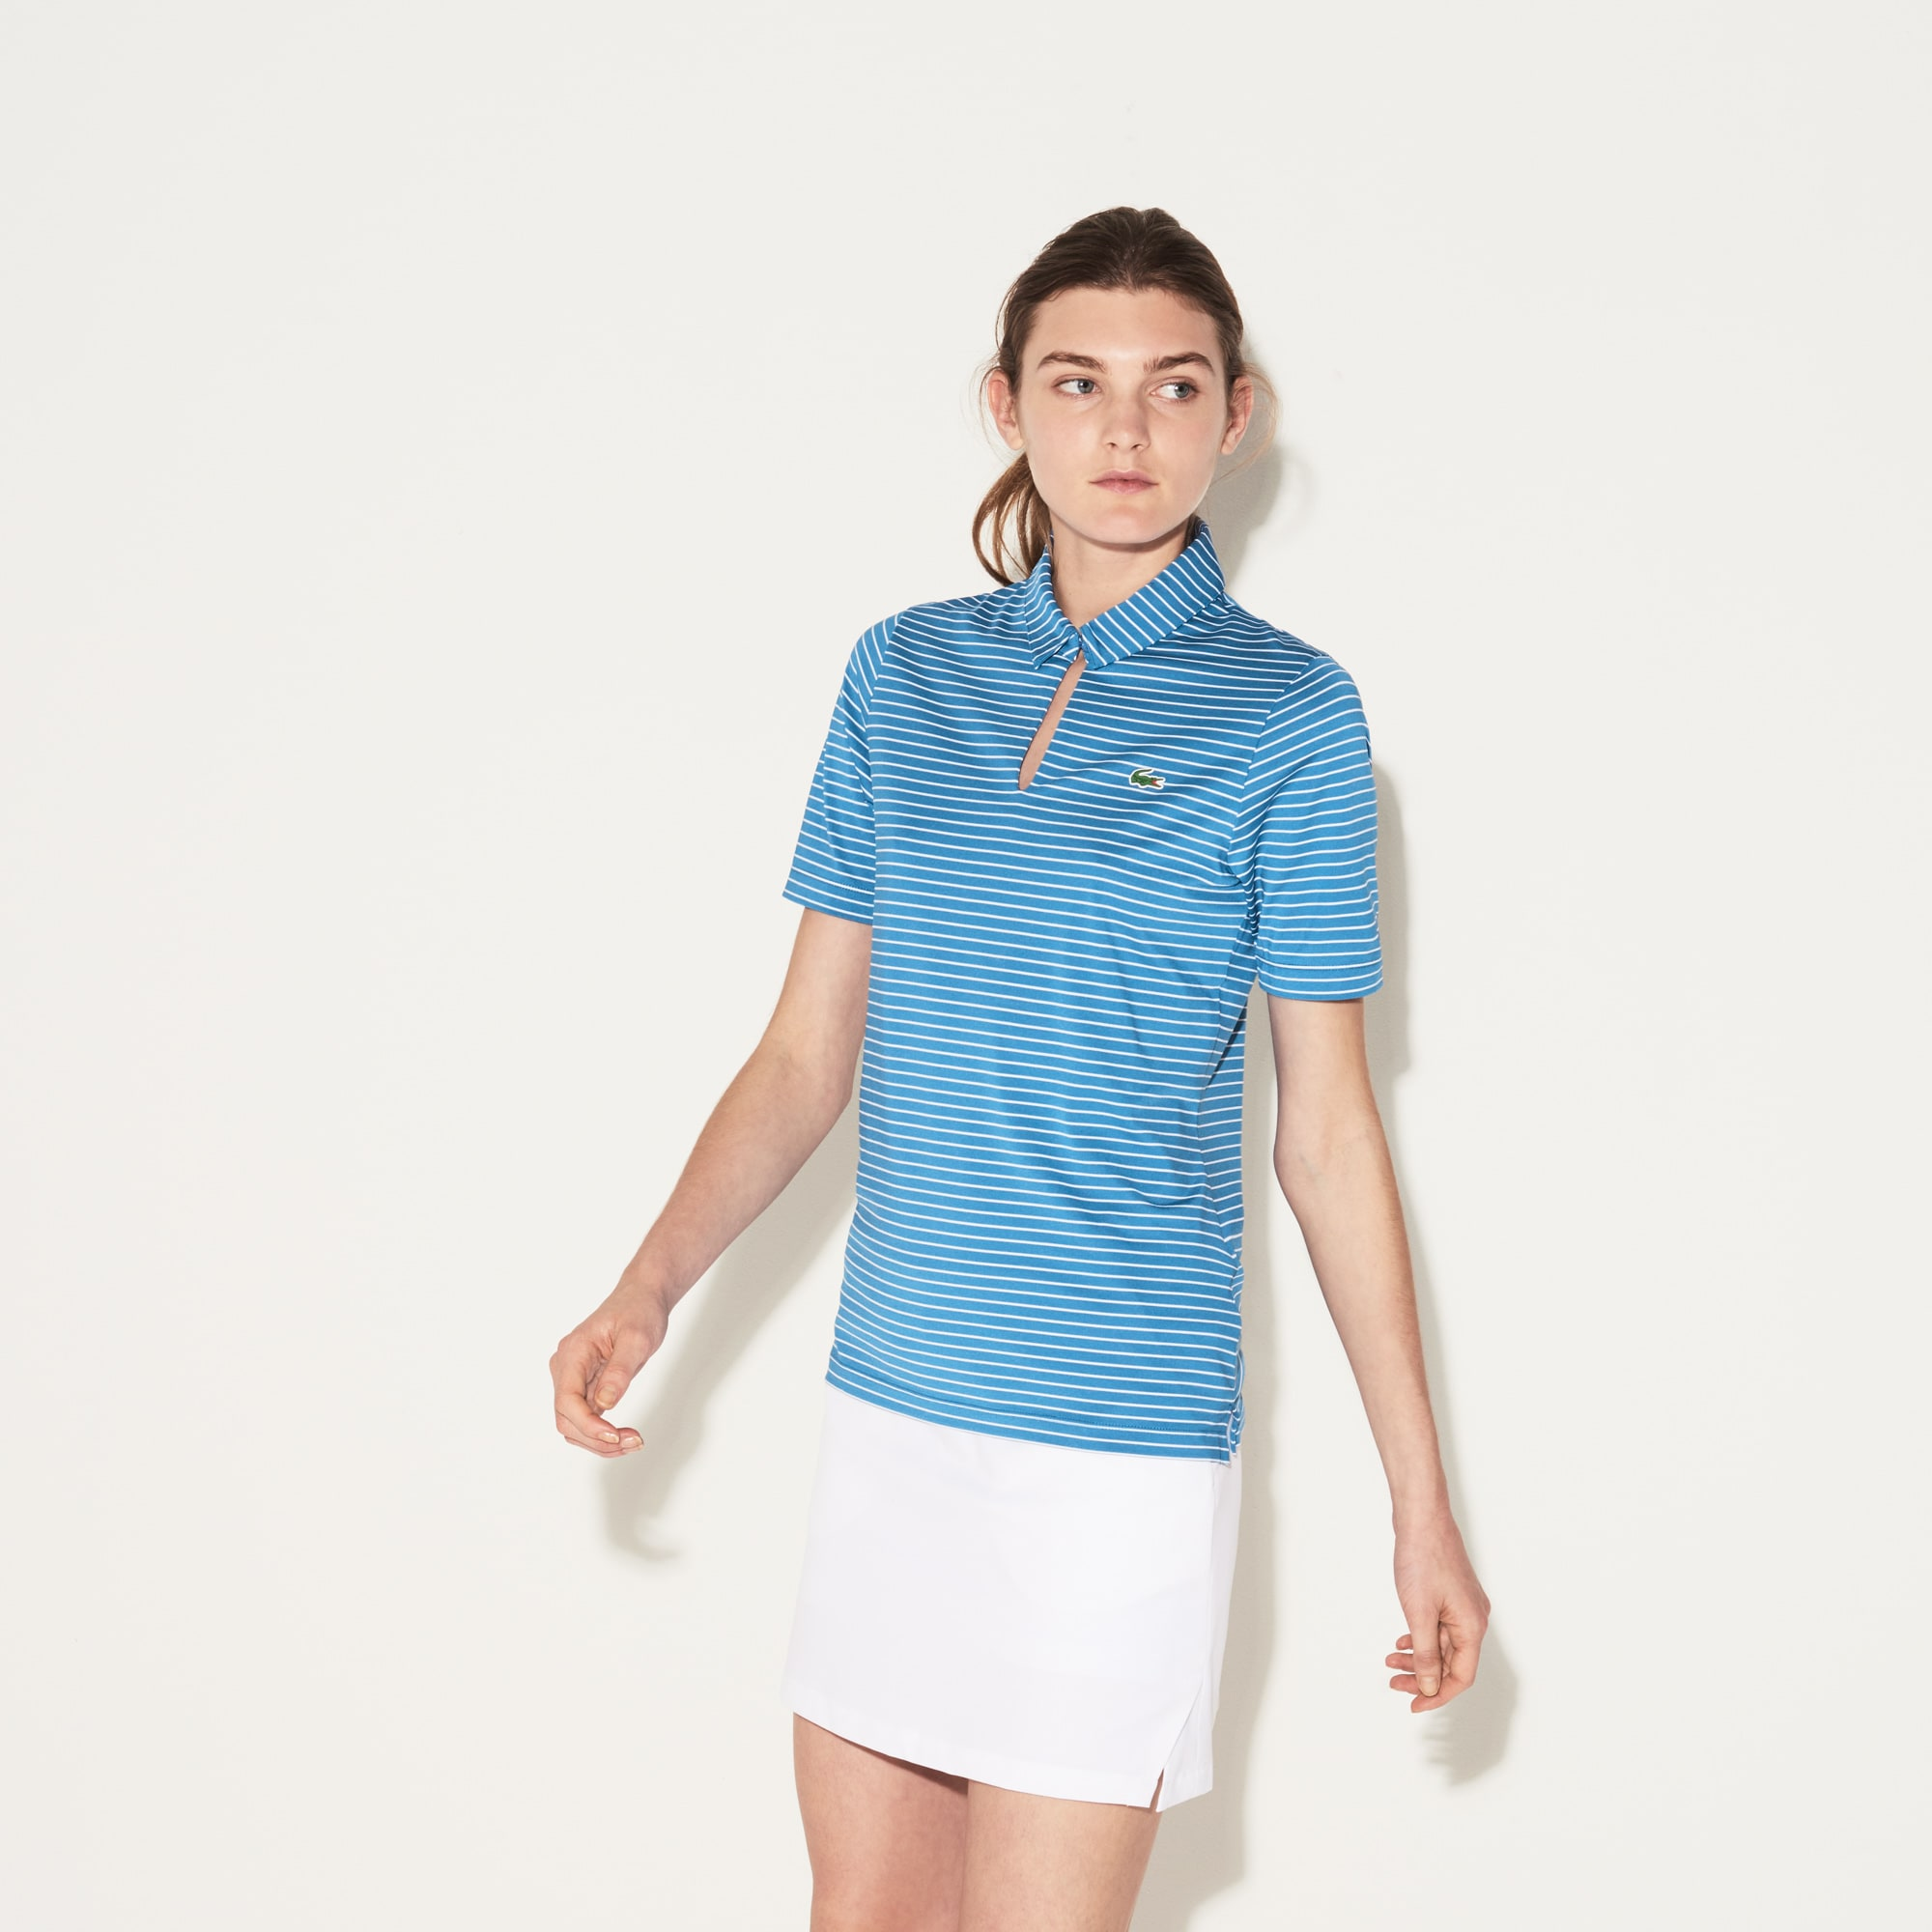 Women's SPORT Teardrop Neck Golf Polo